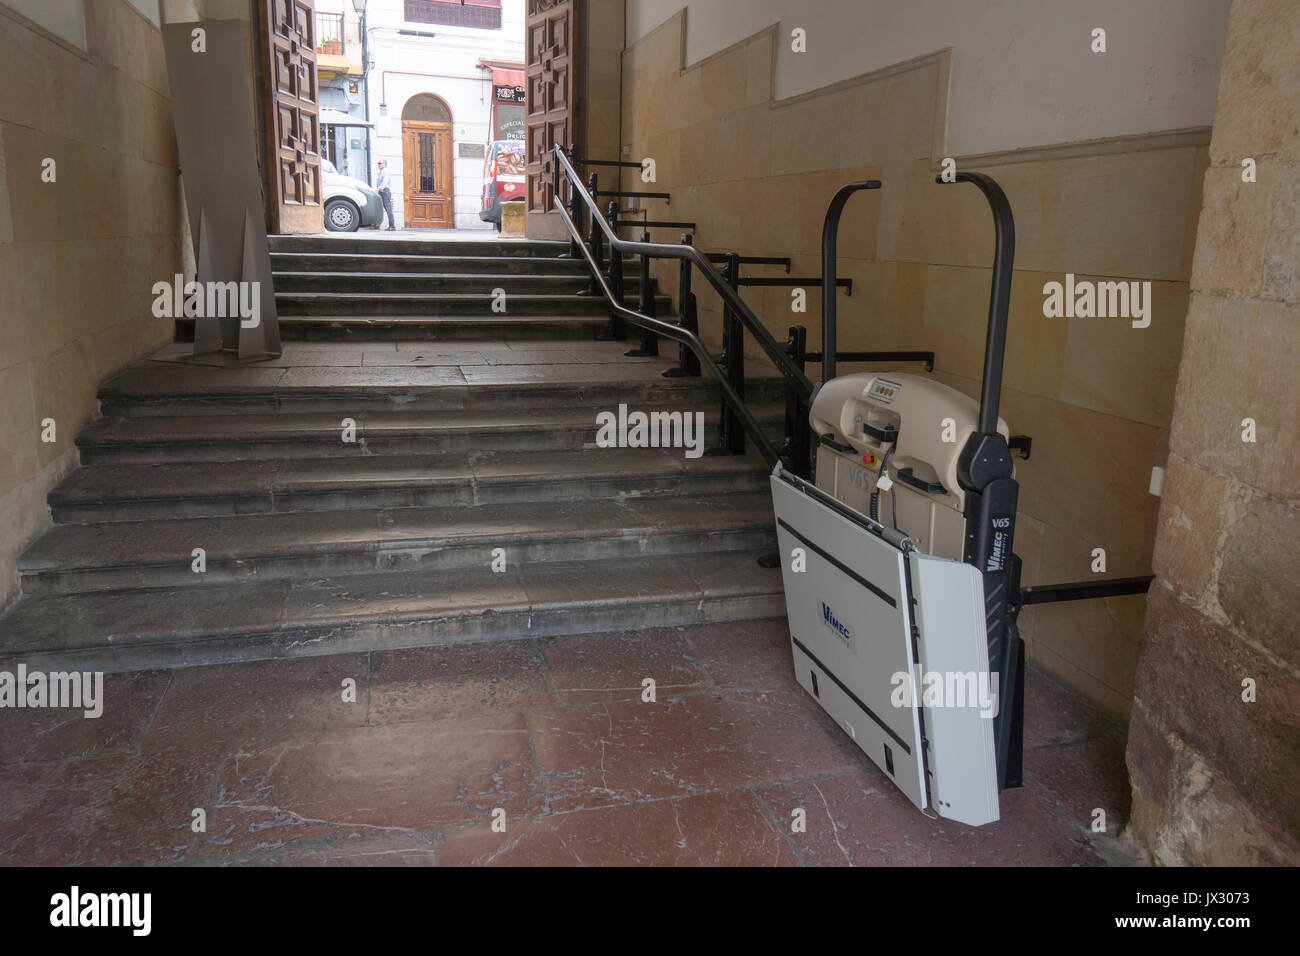 Wheelchair lift stock photos wheelchair lift stock for Motorized chair lift for stairs